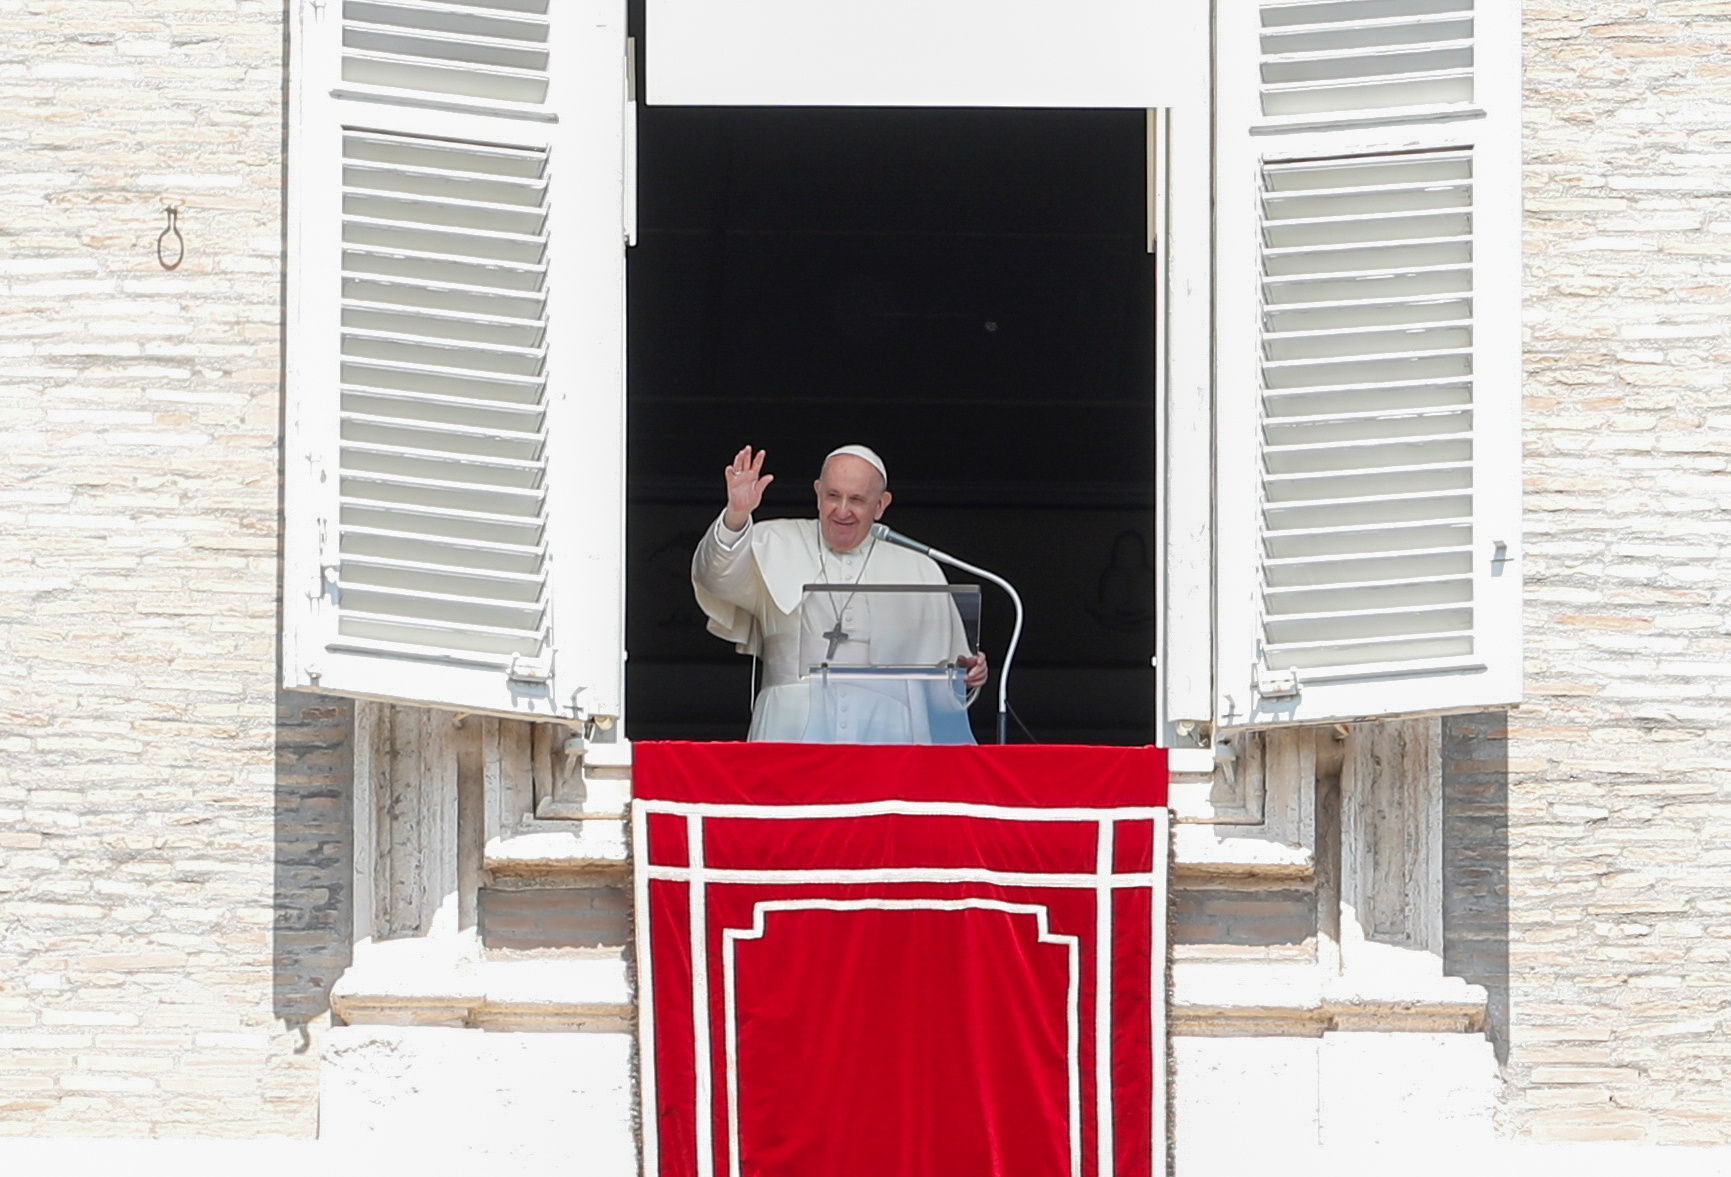 Pope Francis leads the Regina Coeli prayer from his window at St. Peter's Square at the Vatican, on April 25, 2021. REUTERS/Remo Casilli